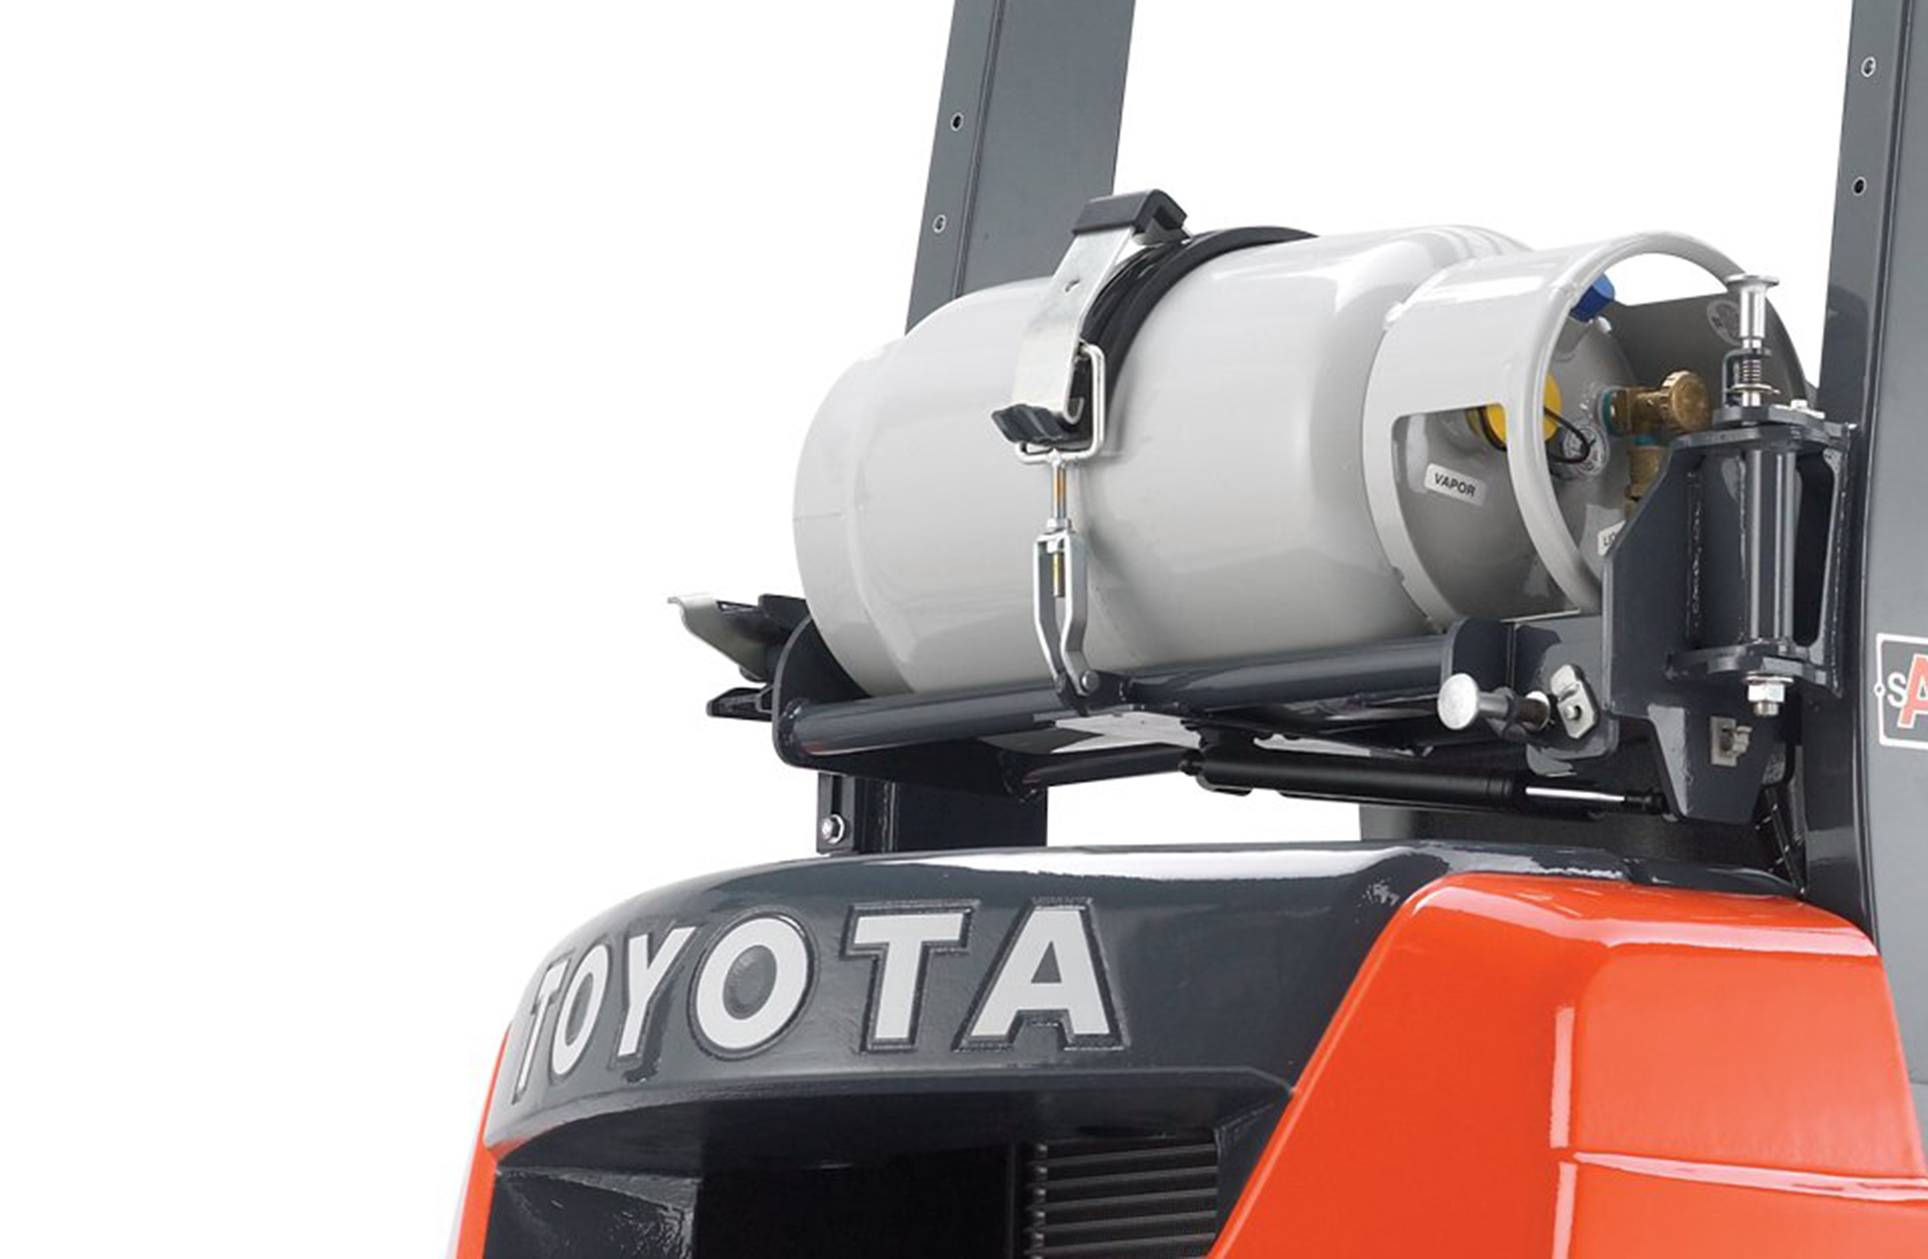 Close-up image of the rear side of Toyota's Core Pneumatic forklift.